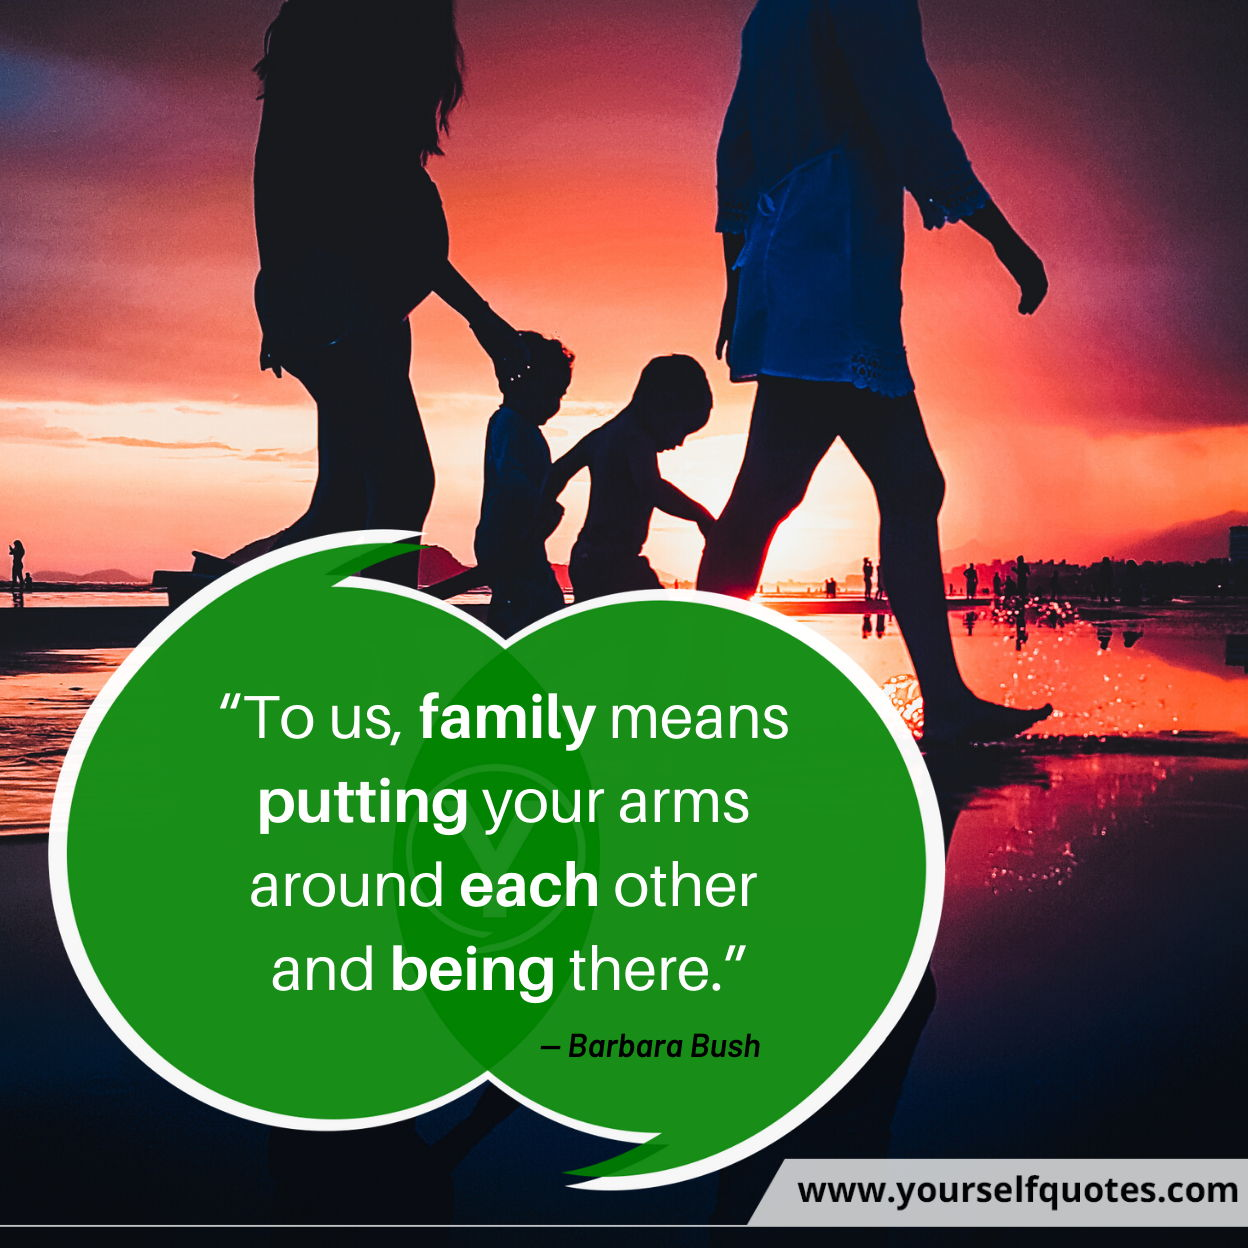 Quotes About Family Love by Barbara Bush